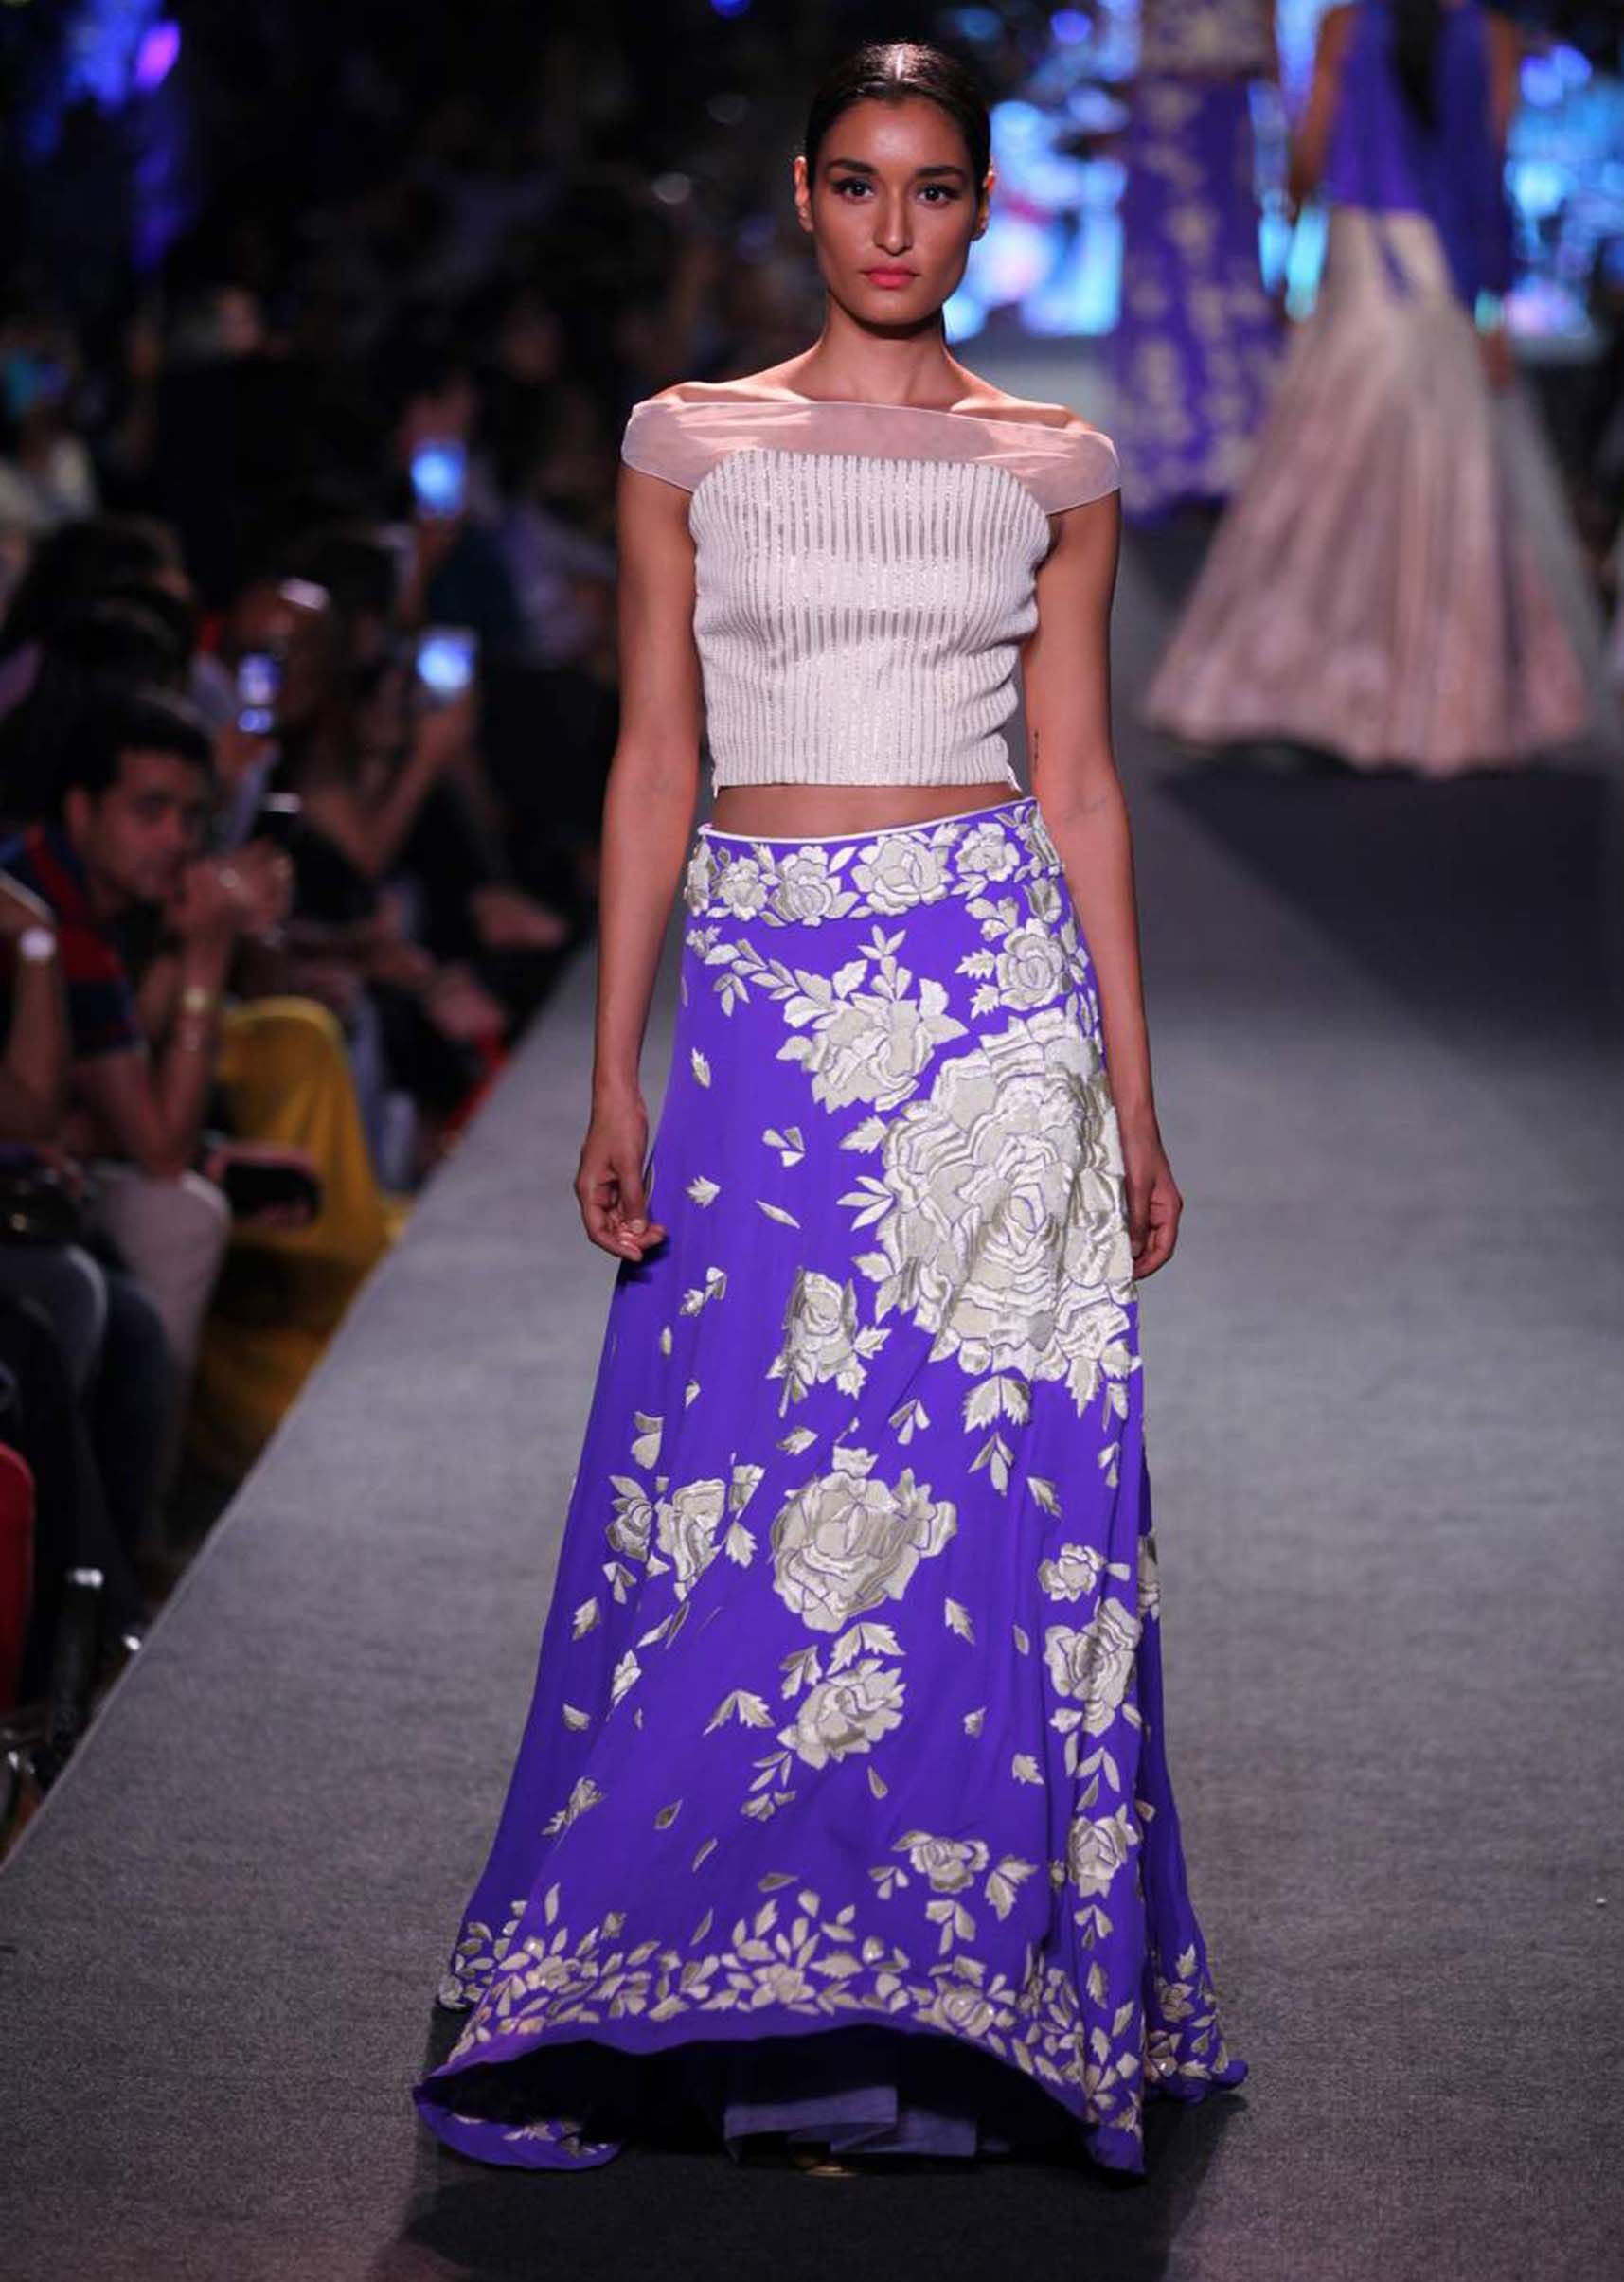 Model walks the ramp in purple lehenga with rose motif for Manish ...